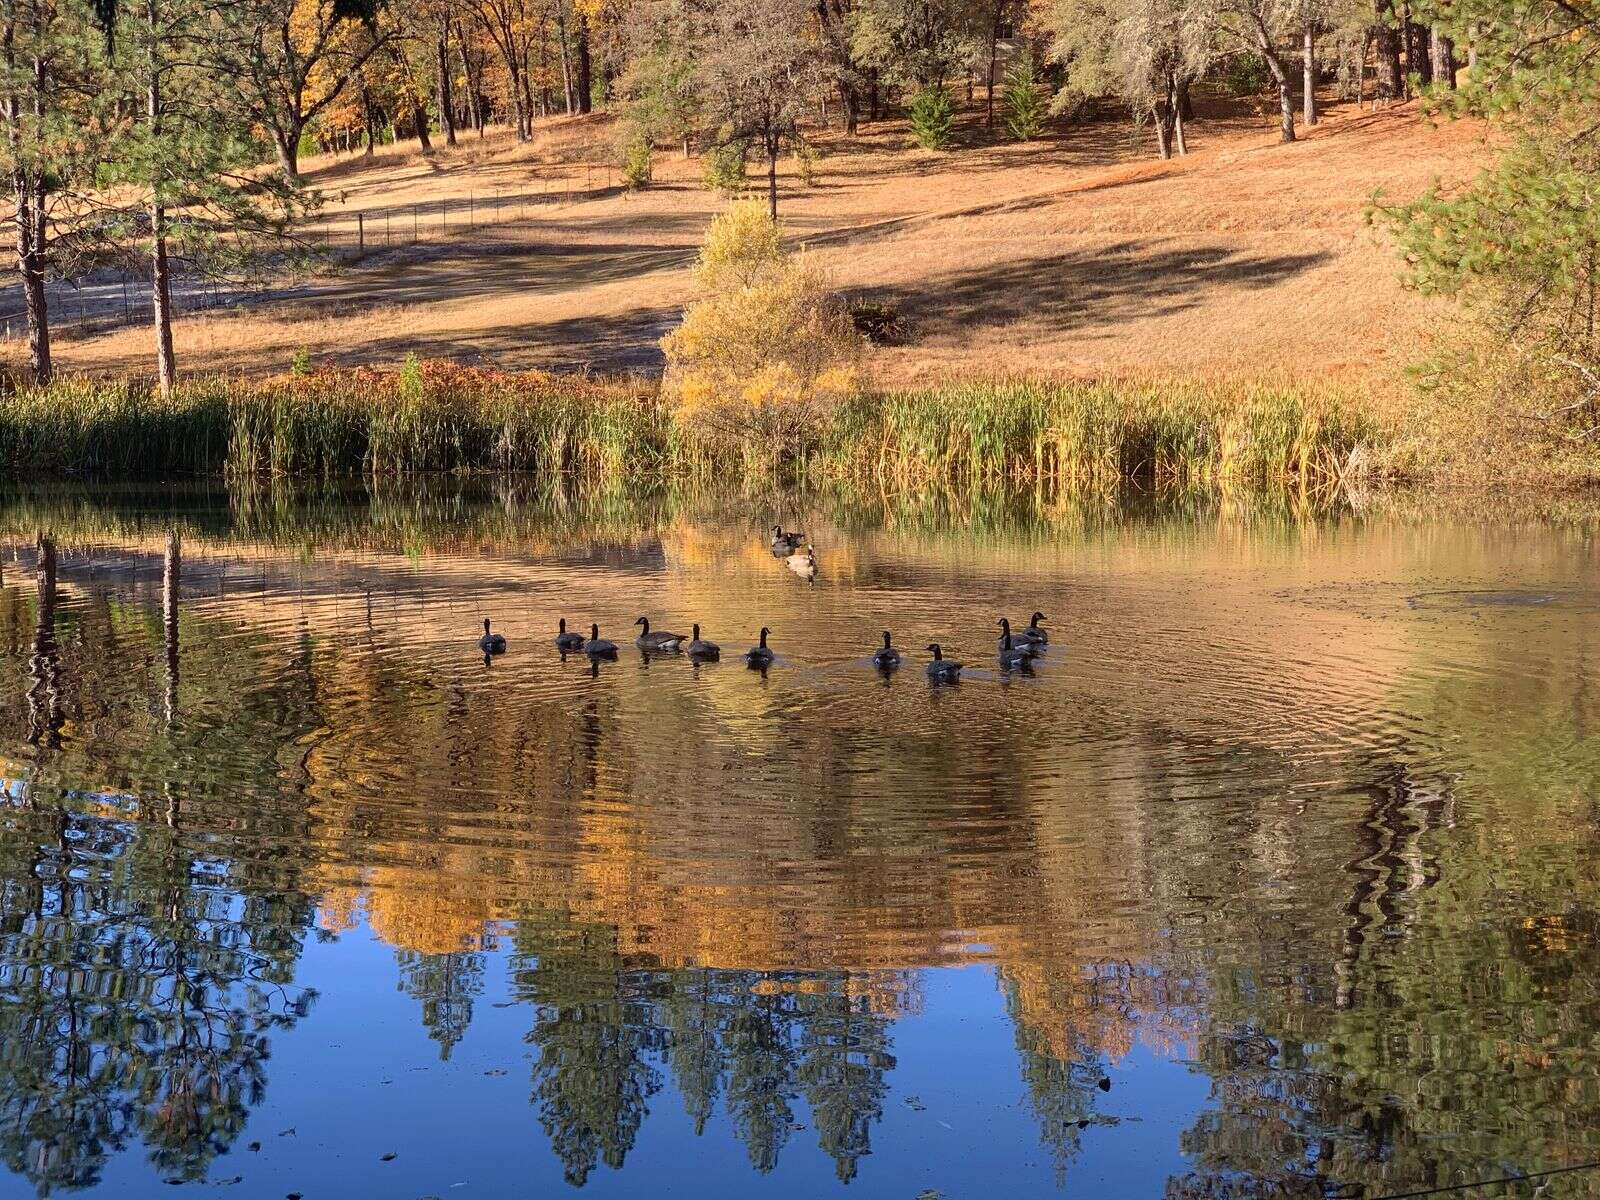 Canadian Geese taking a migration break. | Submitted by Marci Ficarra